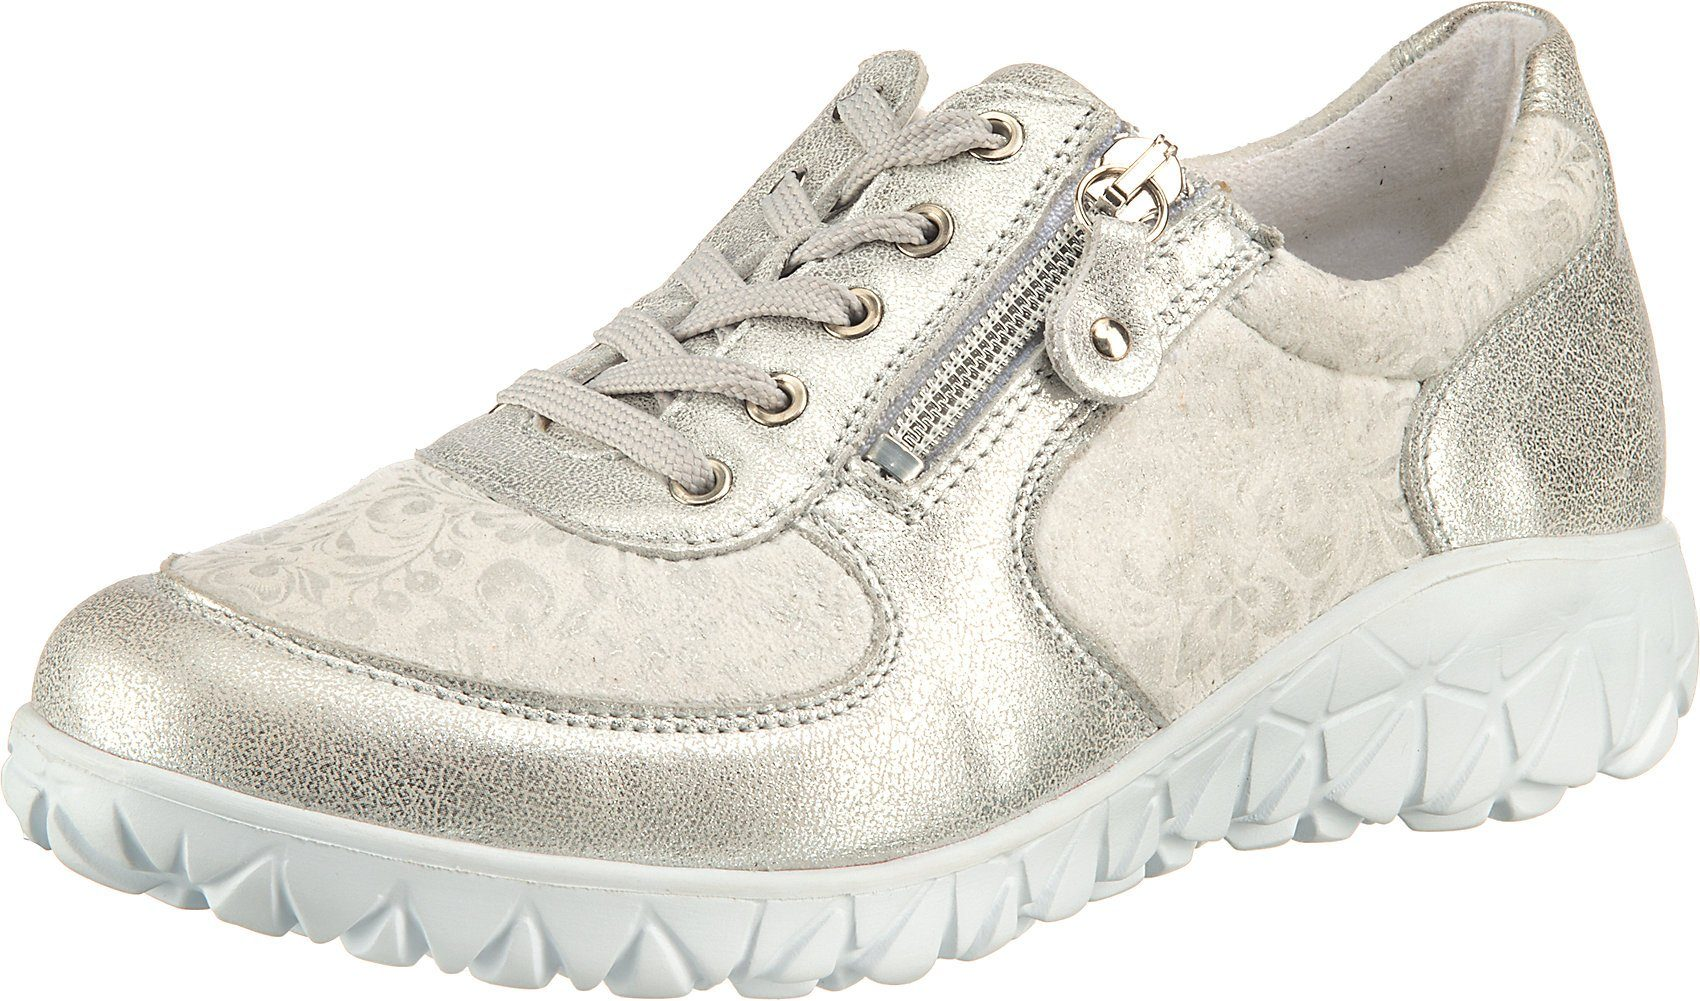 Waldläufer »Havy soft Sneakers Low« Sneaker kaufen | OTTO